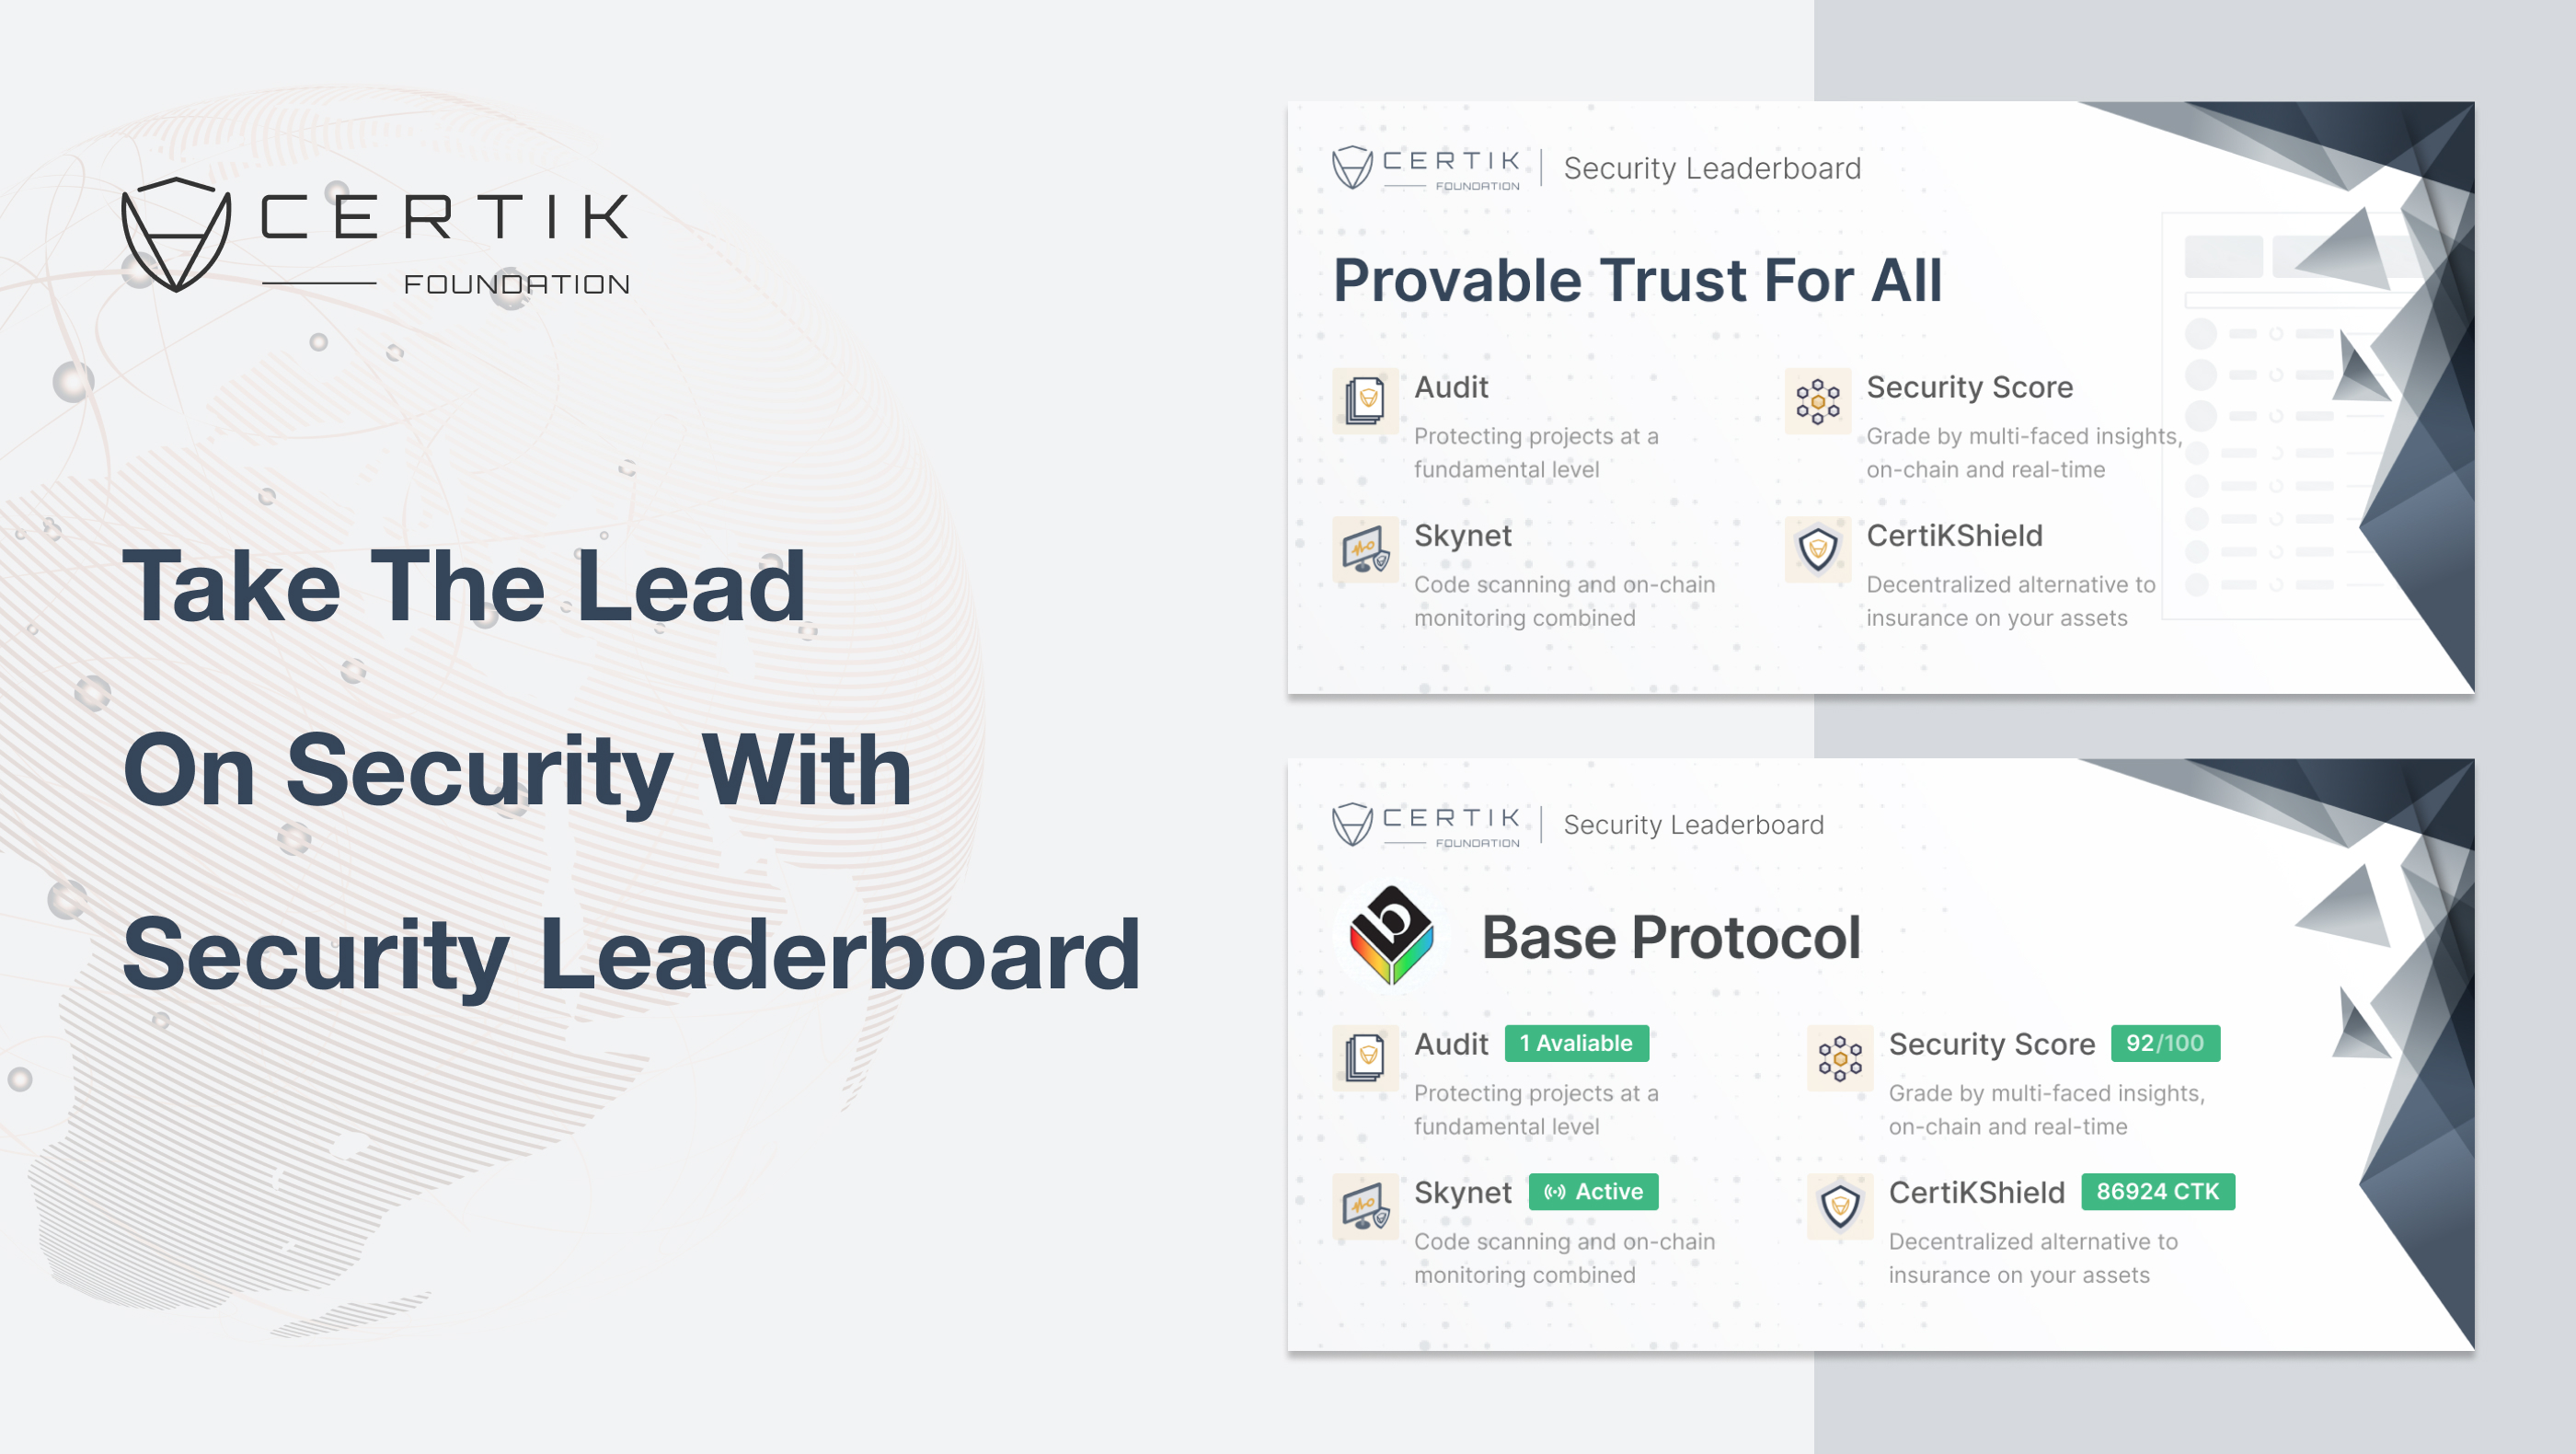 Take the Lead on Security with Security Leaderboard